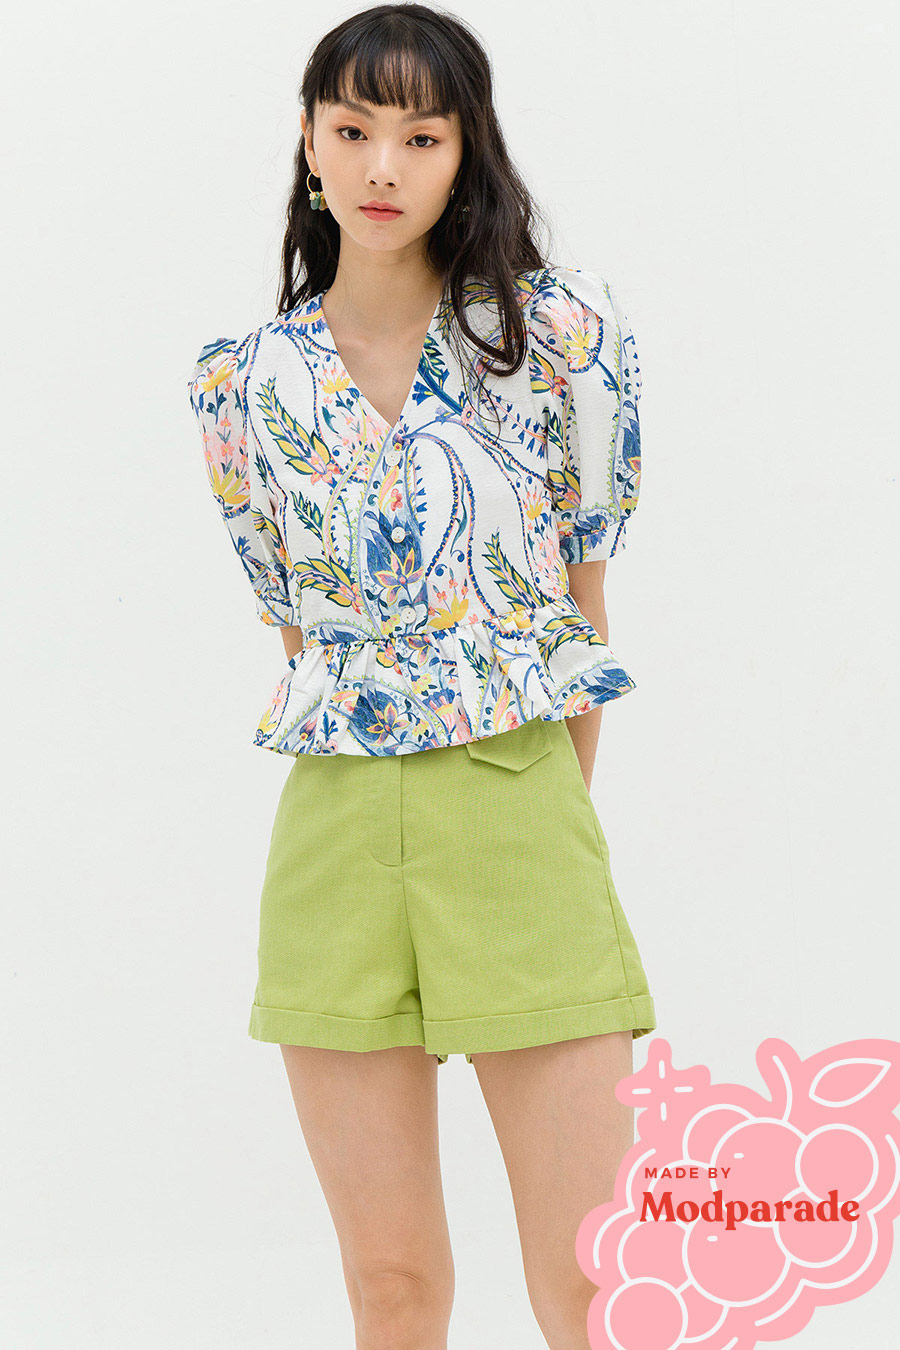 SOLANGE TOP - CLOUD PAISLEY [BY MODPARADE]